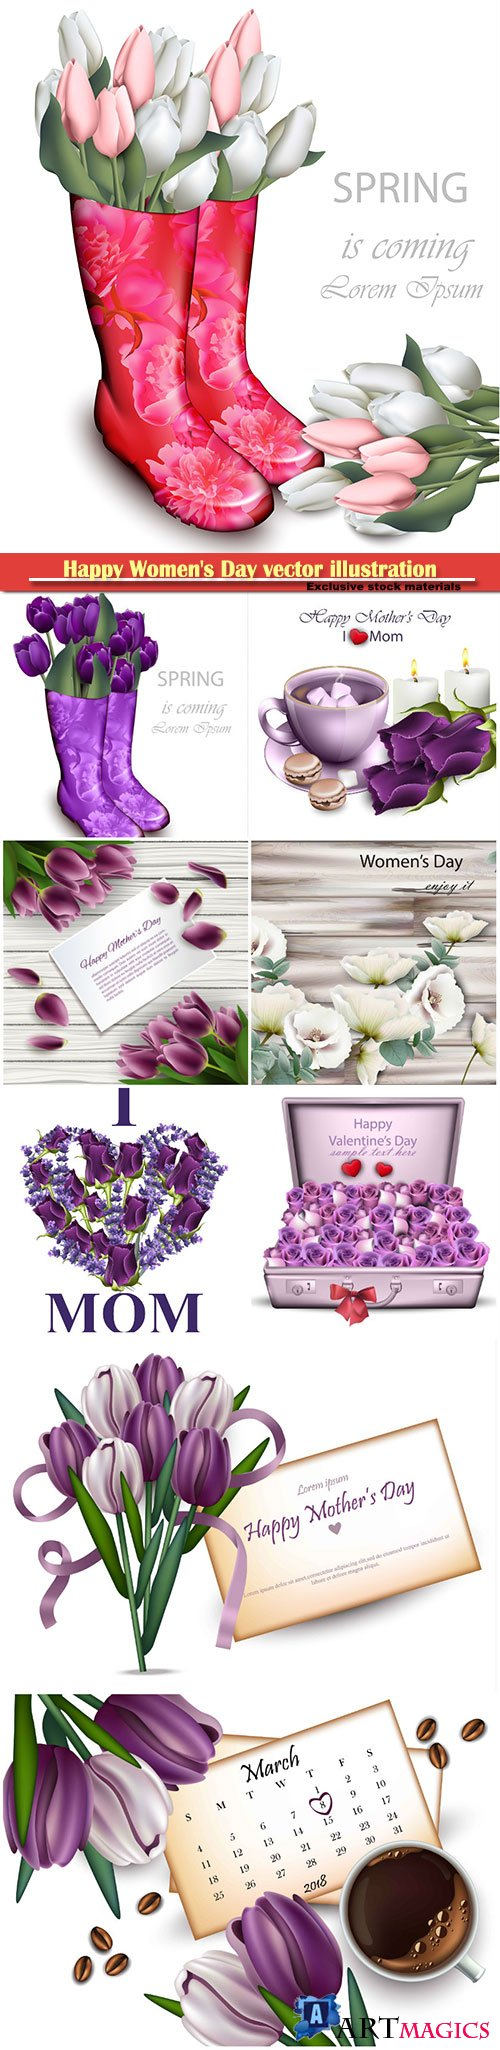 Happy Women's Day vector illustration,8 March, spring flower background # 9